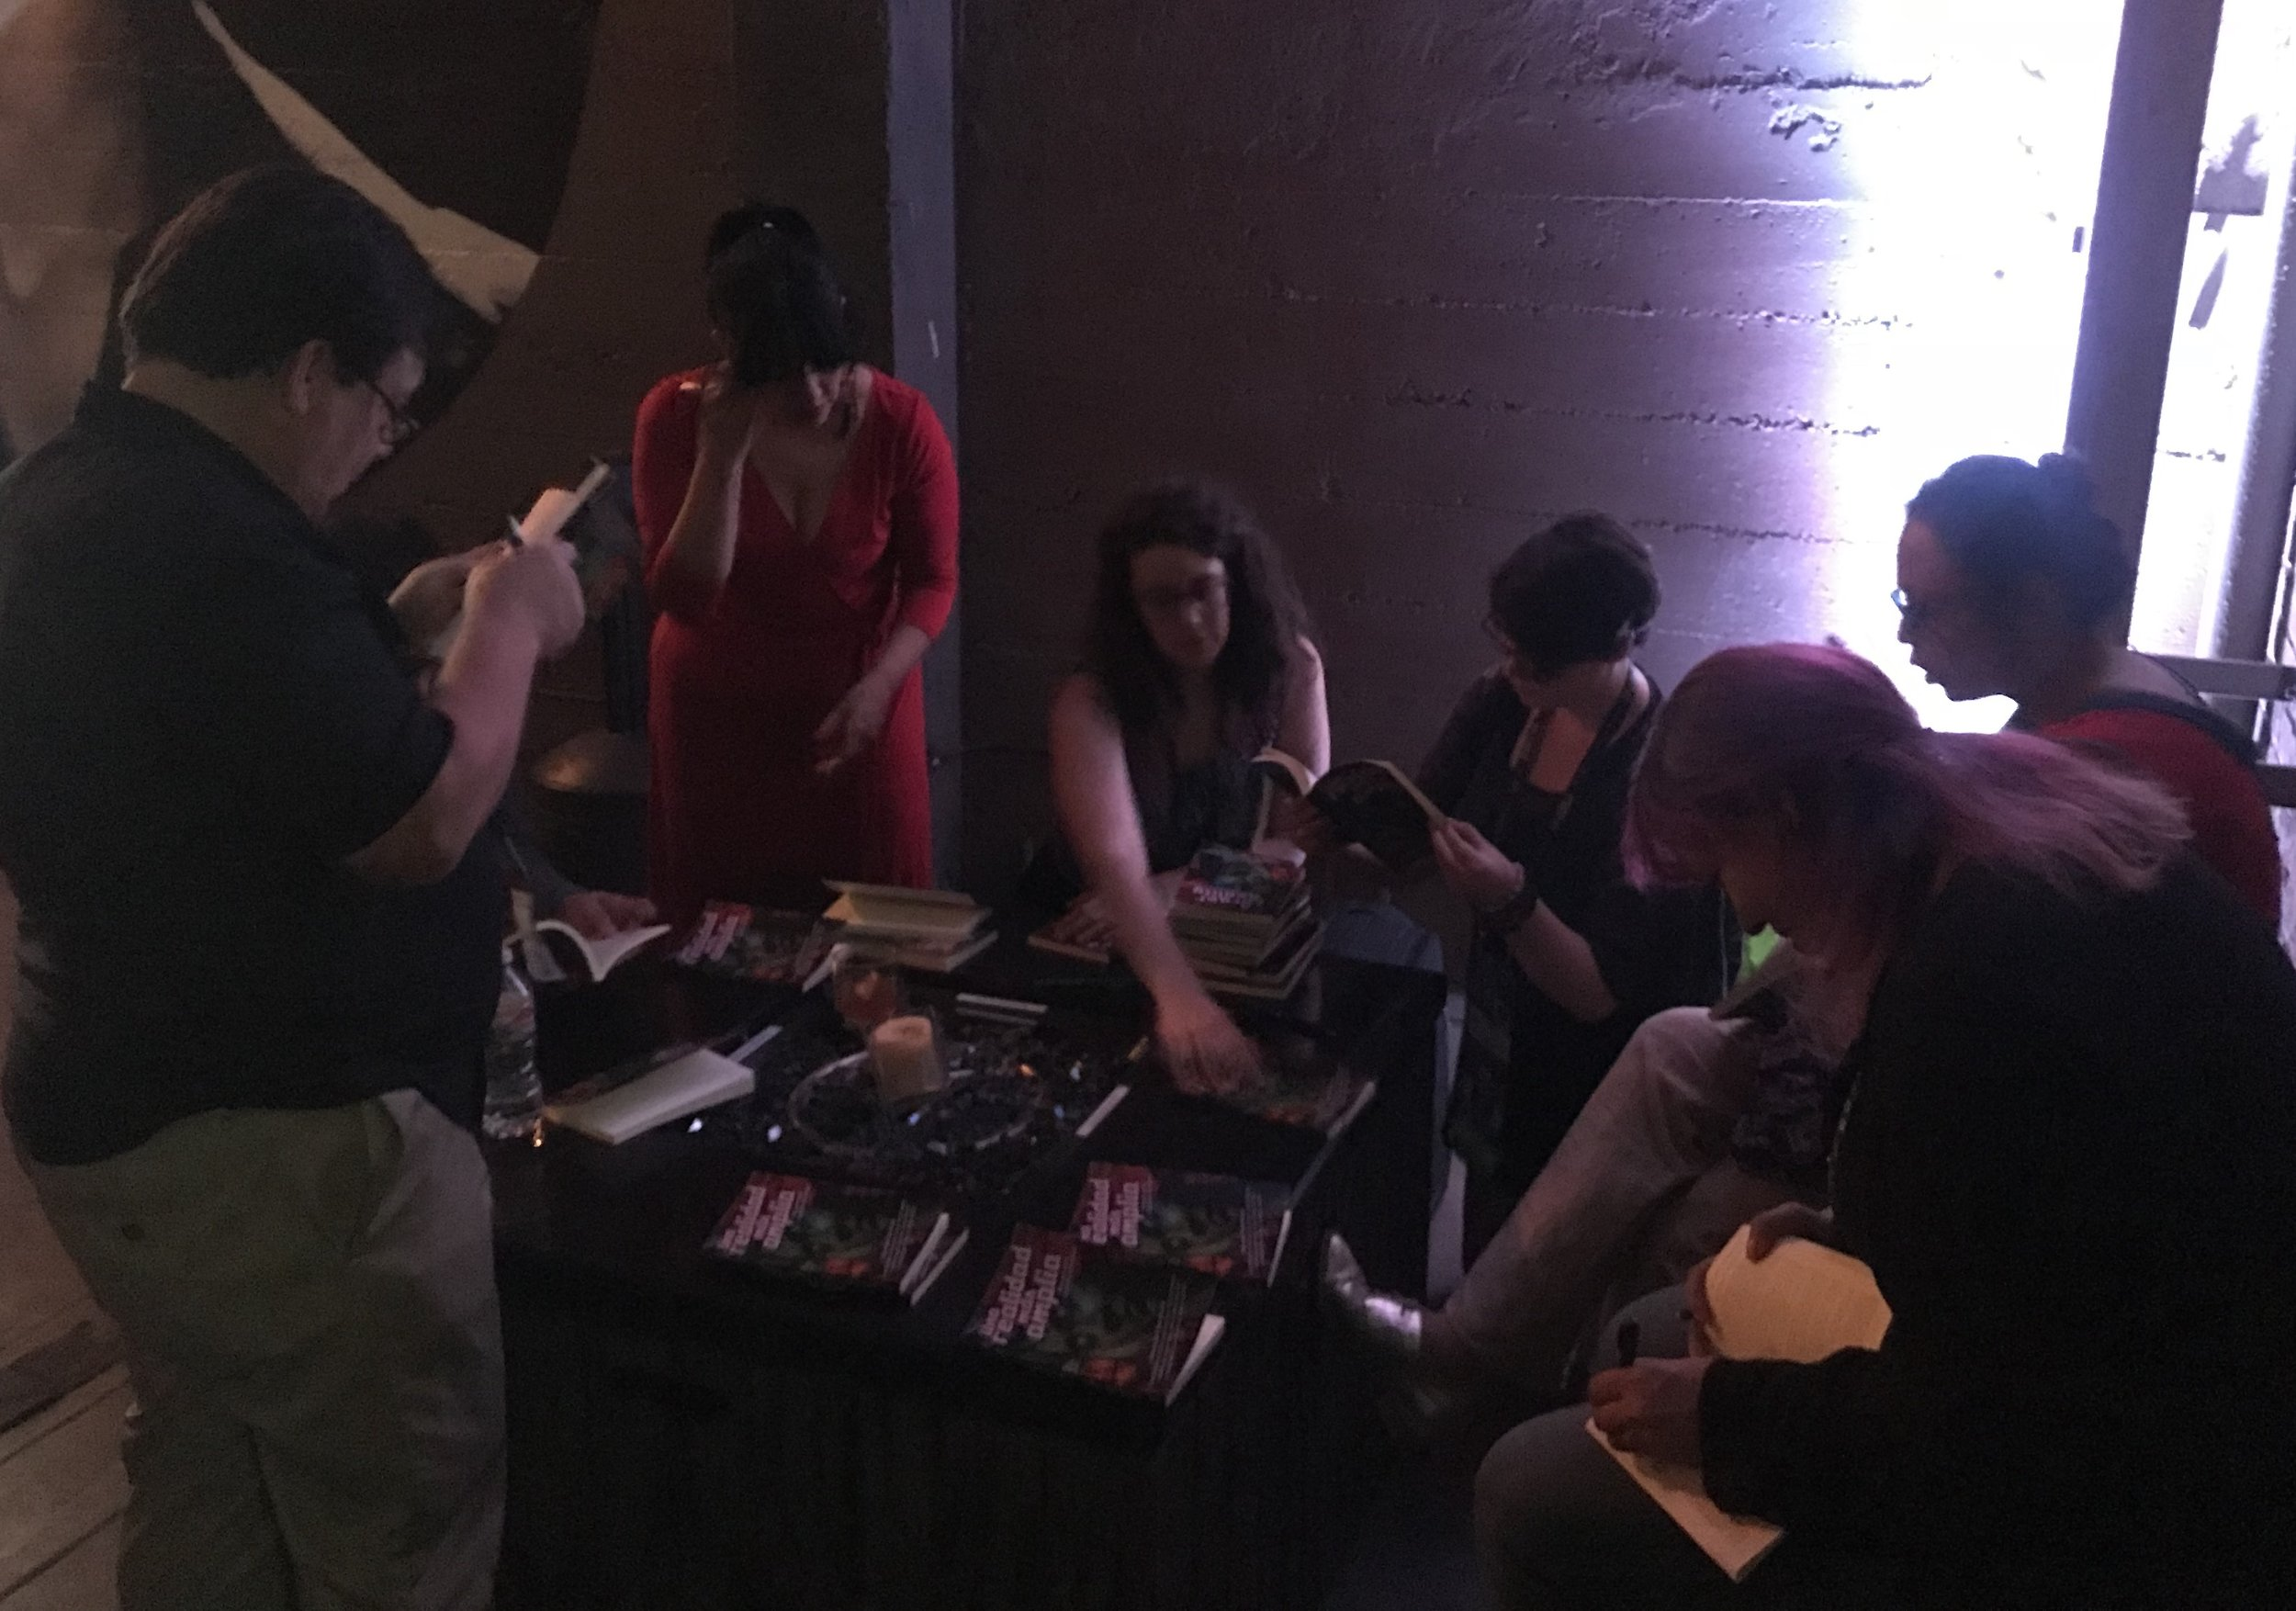 David Bowles, Gabriela Damián, Andrea Chapela, Angela Lujan, Libia Brenda, and Raquel Castro signing books for Kickstarter backers (Photo by Julia Rios)